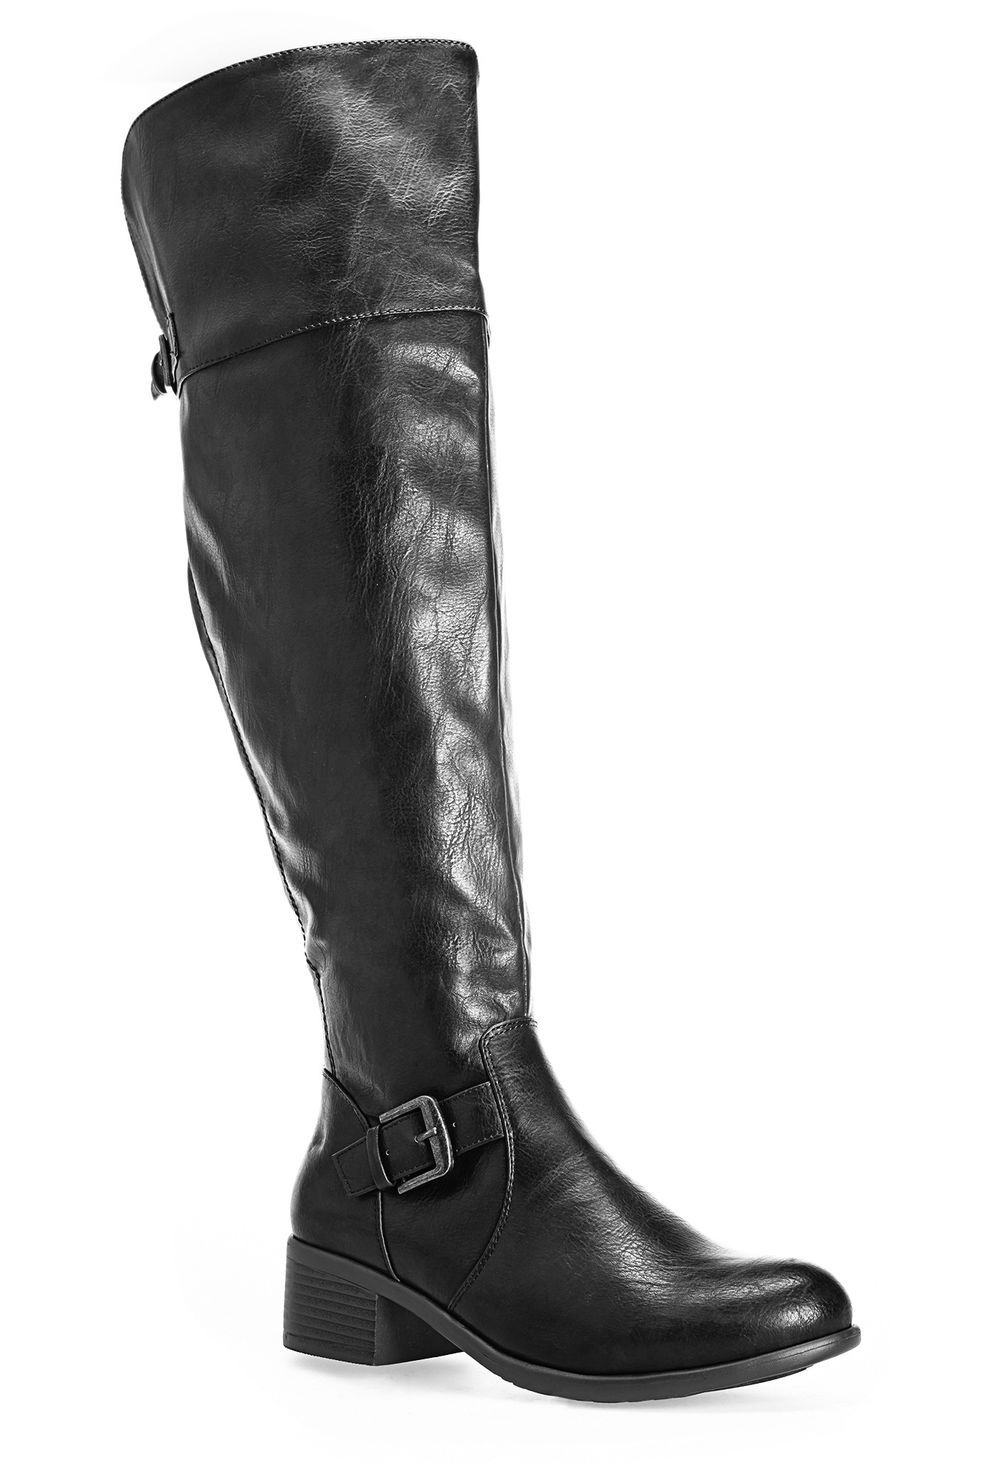 17bef7ae7c8 Madrid Over the Knee Buckle Boot-Wide Width Boot-Avenue